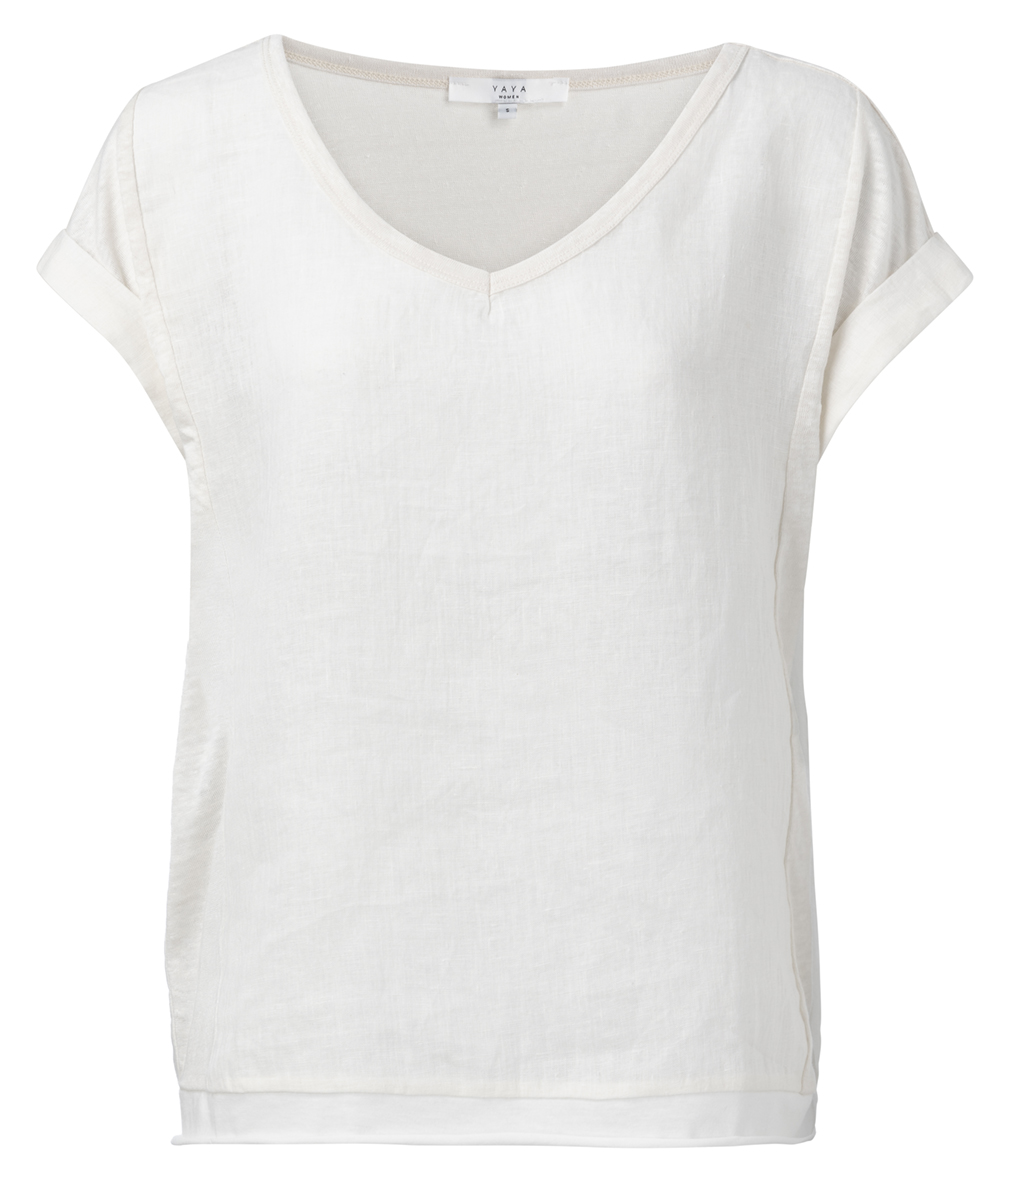 Yaya blanc de blanc linnen fabric mix top